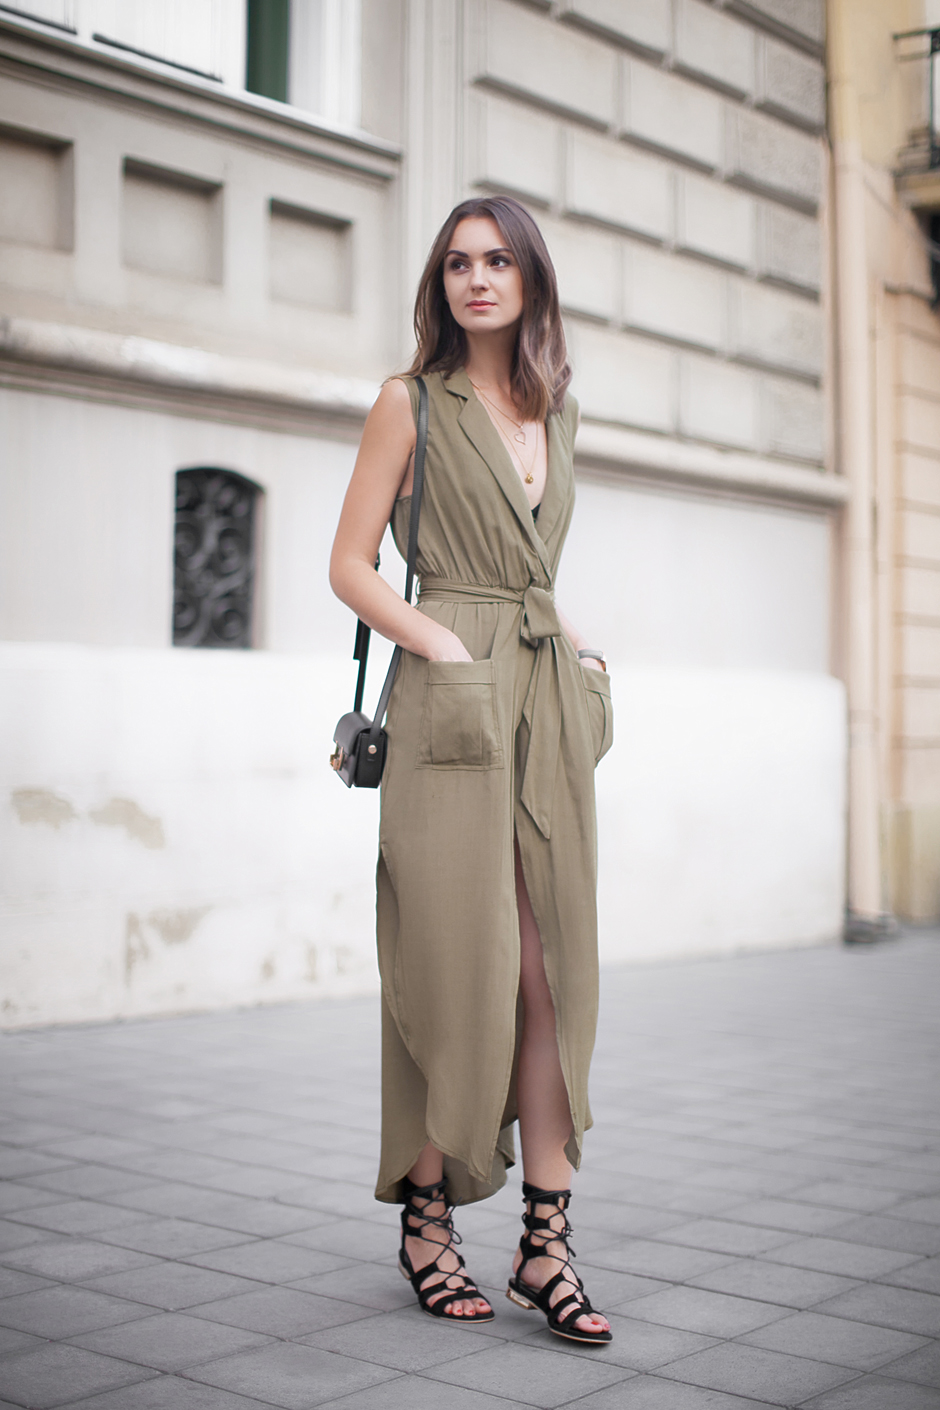 olive-green-maxi-dress-70s-trend-outfit